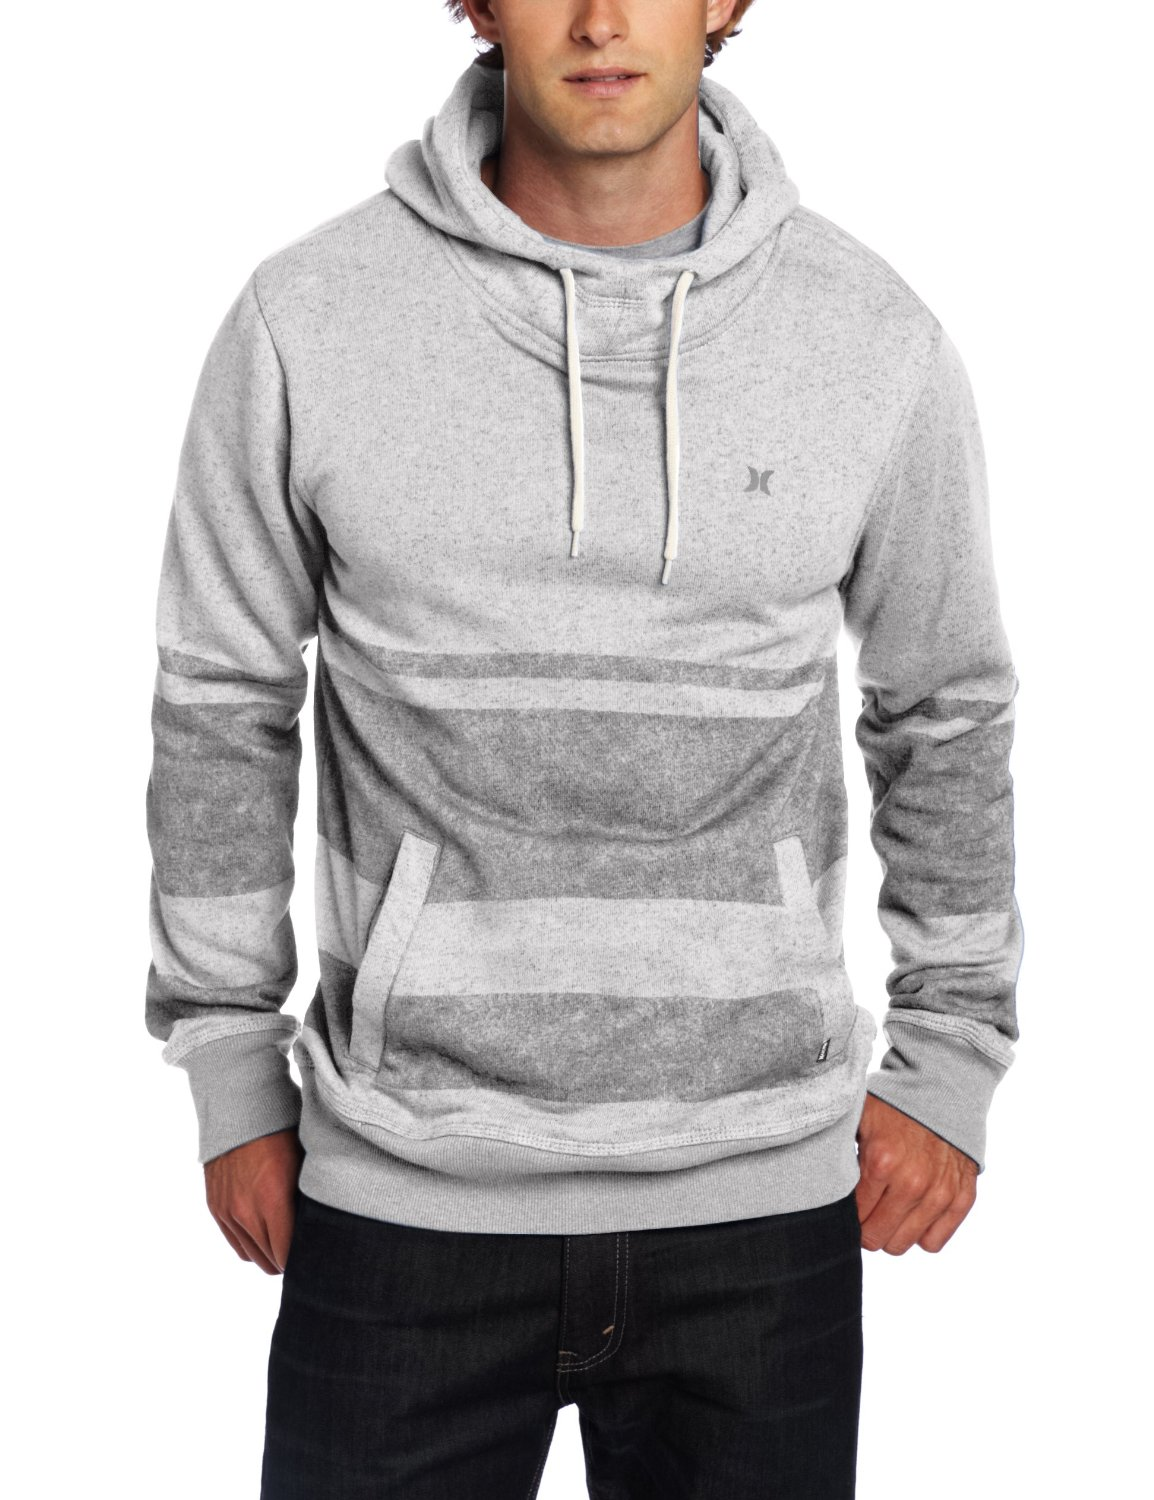 Men's hoodies are an obvious staple, whether between seasons or just for keeping warm during the day. Hoodies at Tillys are on trend, and slimming without sacrificing comfort. You'll find men's hoodies with awesome prints and color blocking.